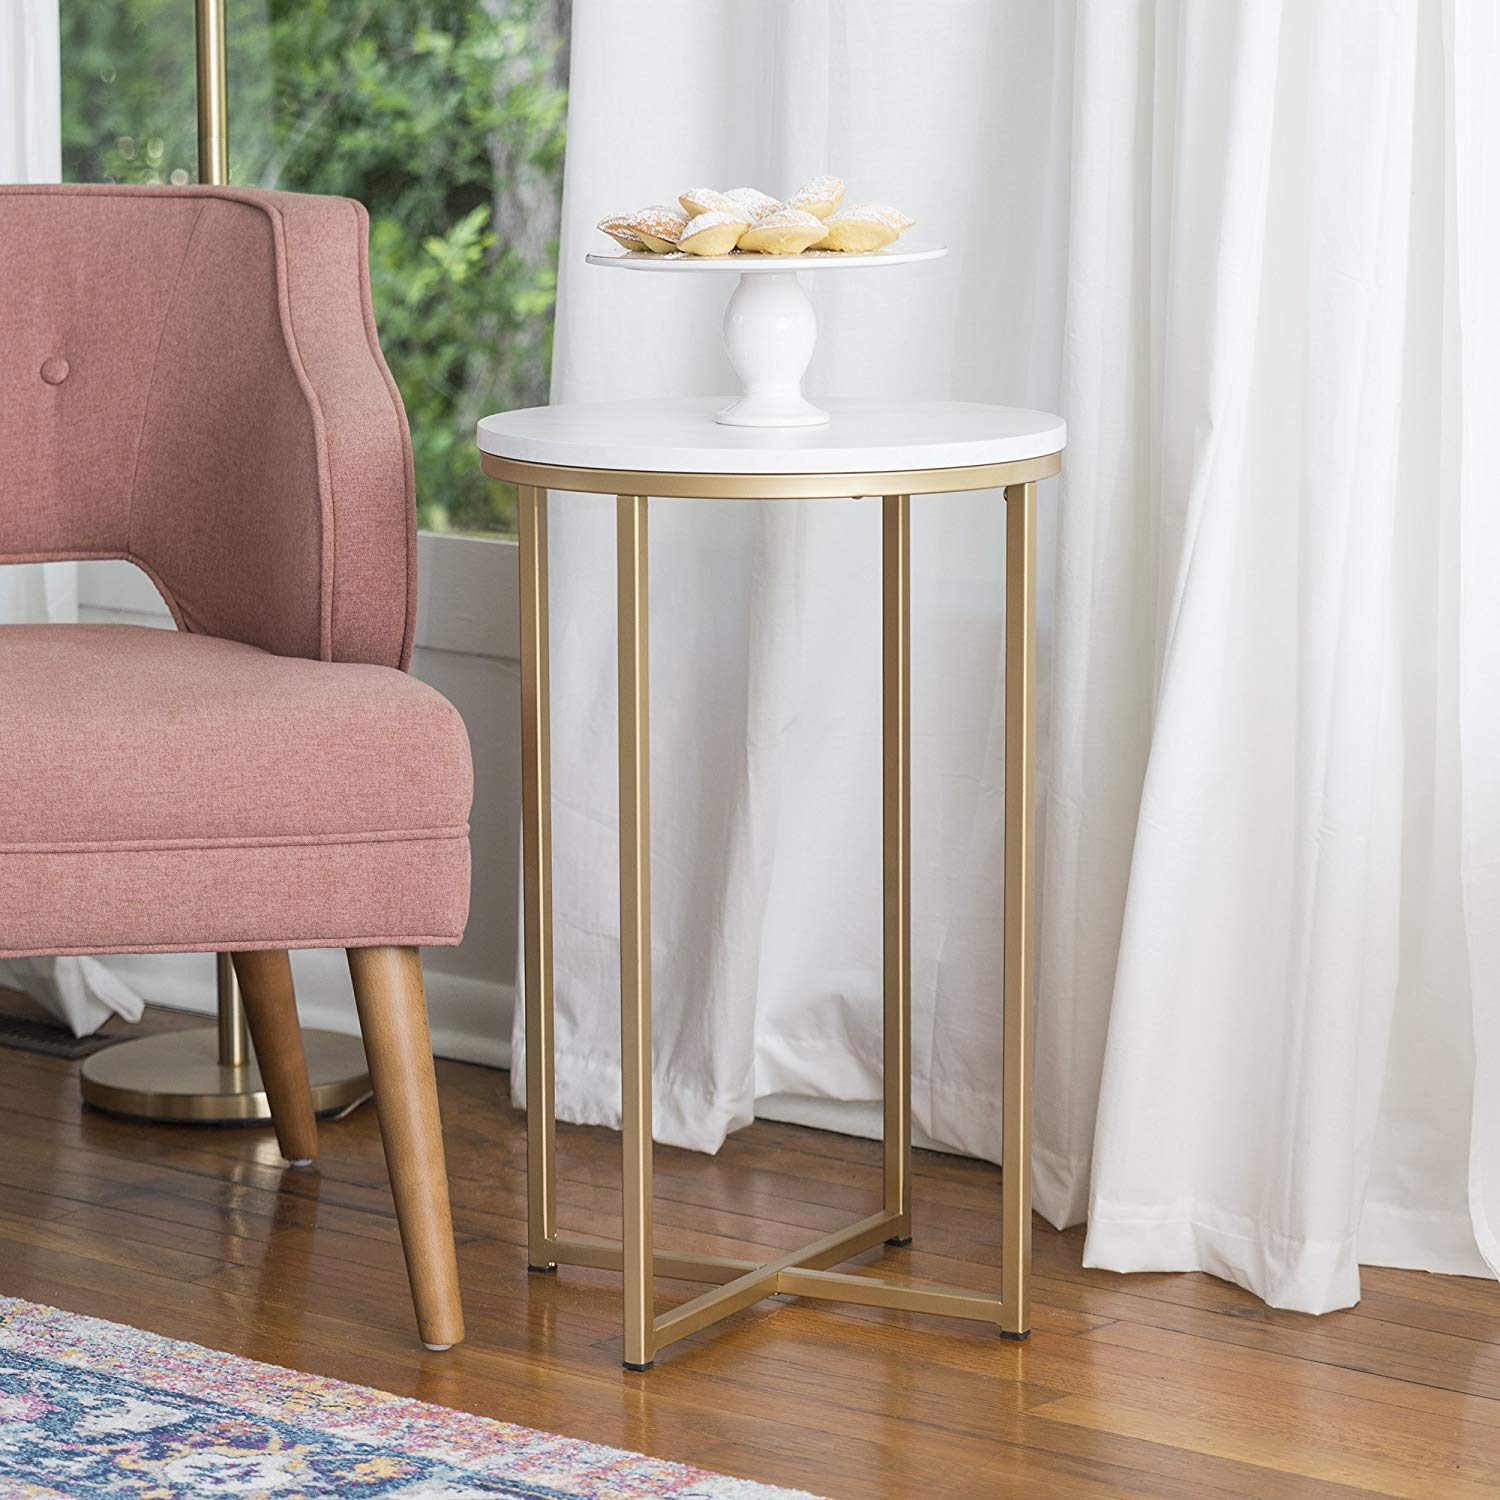 furniture round side table faux marble gold cardboard accent kitchen dining concrete coffee laminate floor door threshold bedside high bar room retro console outdoor nesting tall